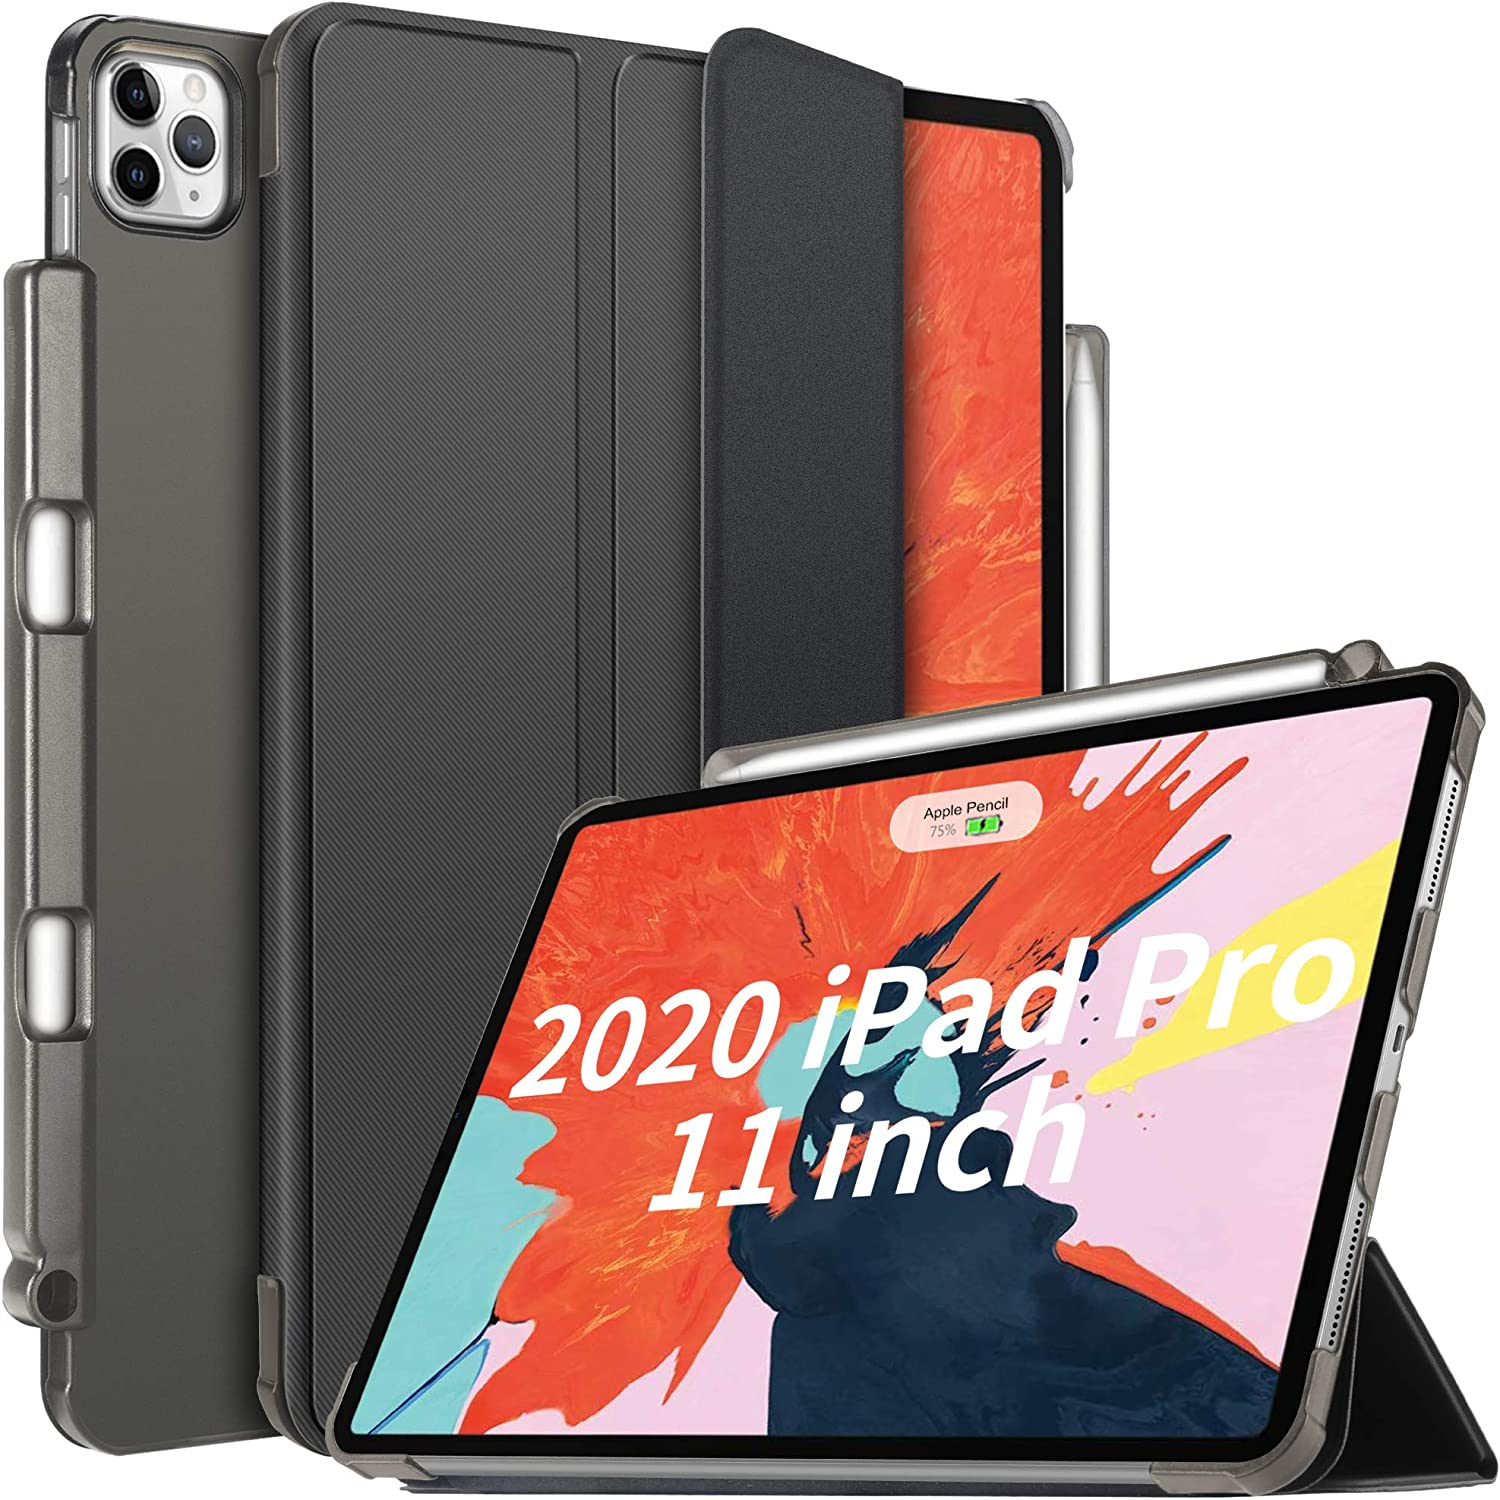 Ivso Case For New Ipad Pro 11 Inch 2020 2nd Generation With Pencil Holder Slim Ebay